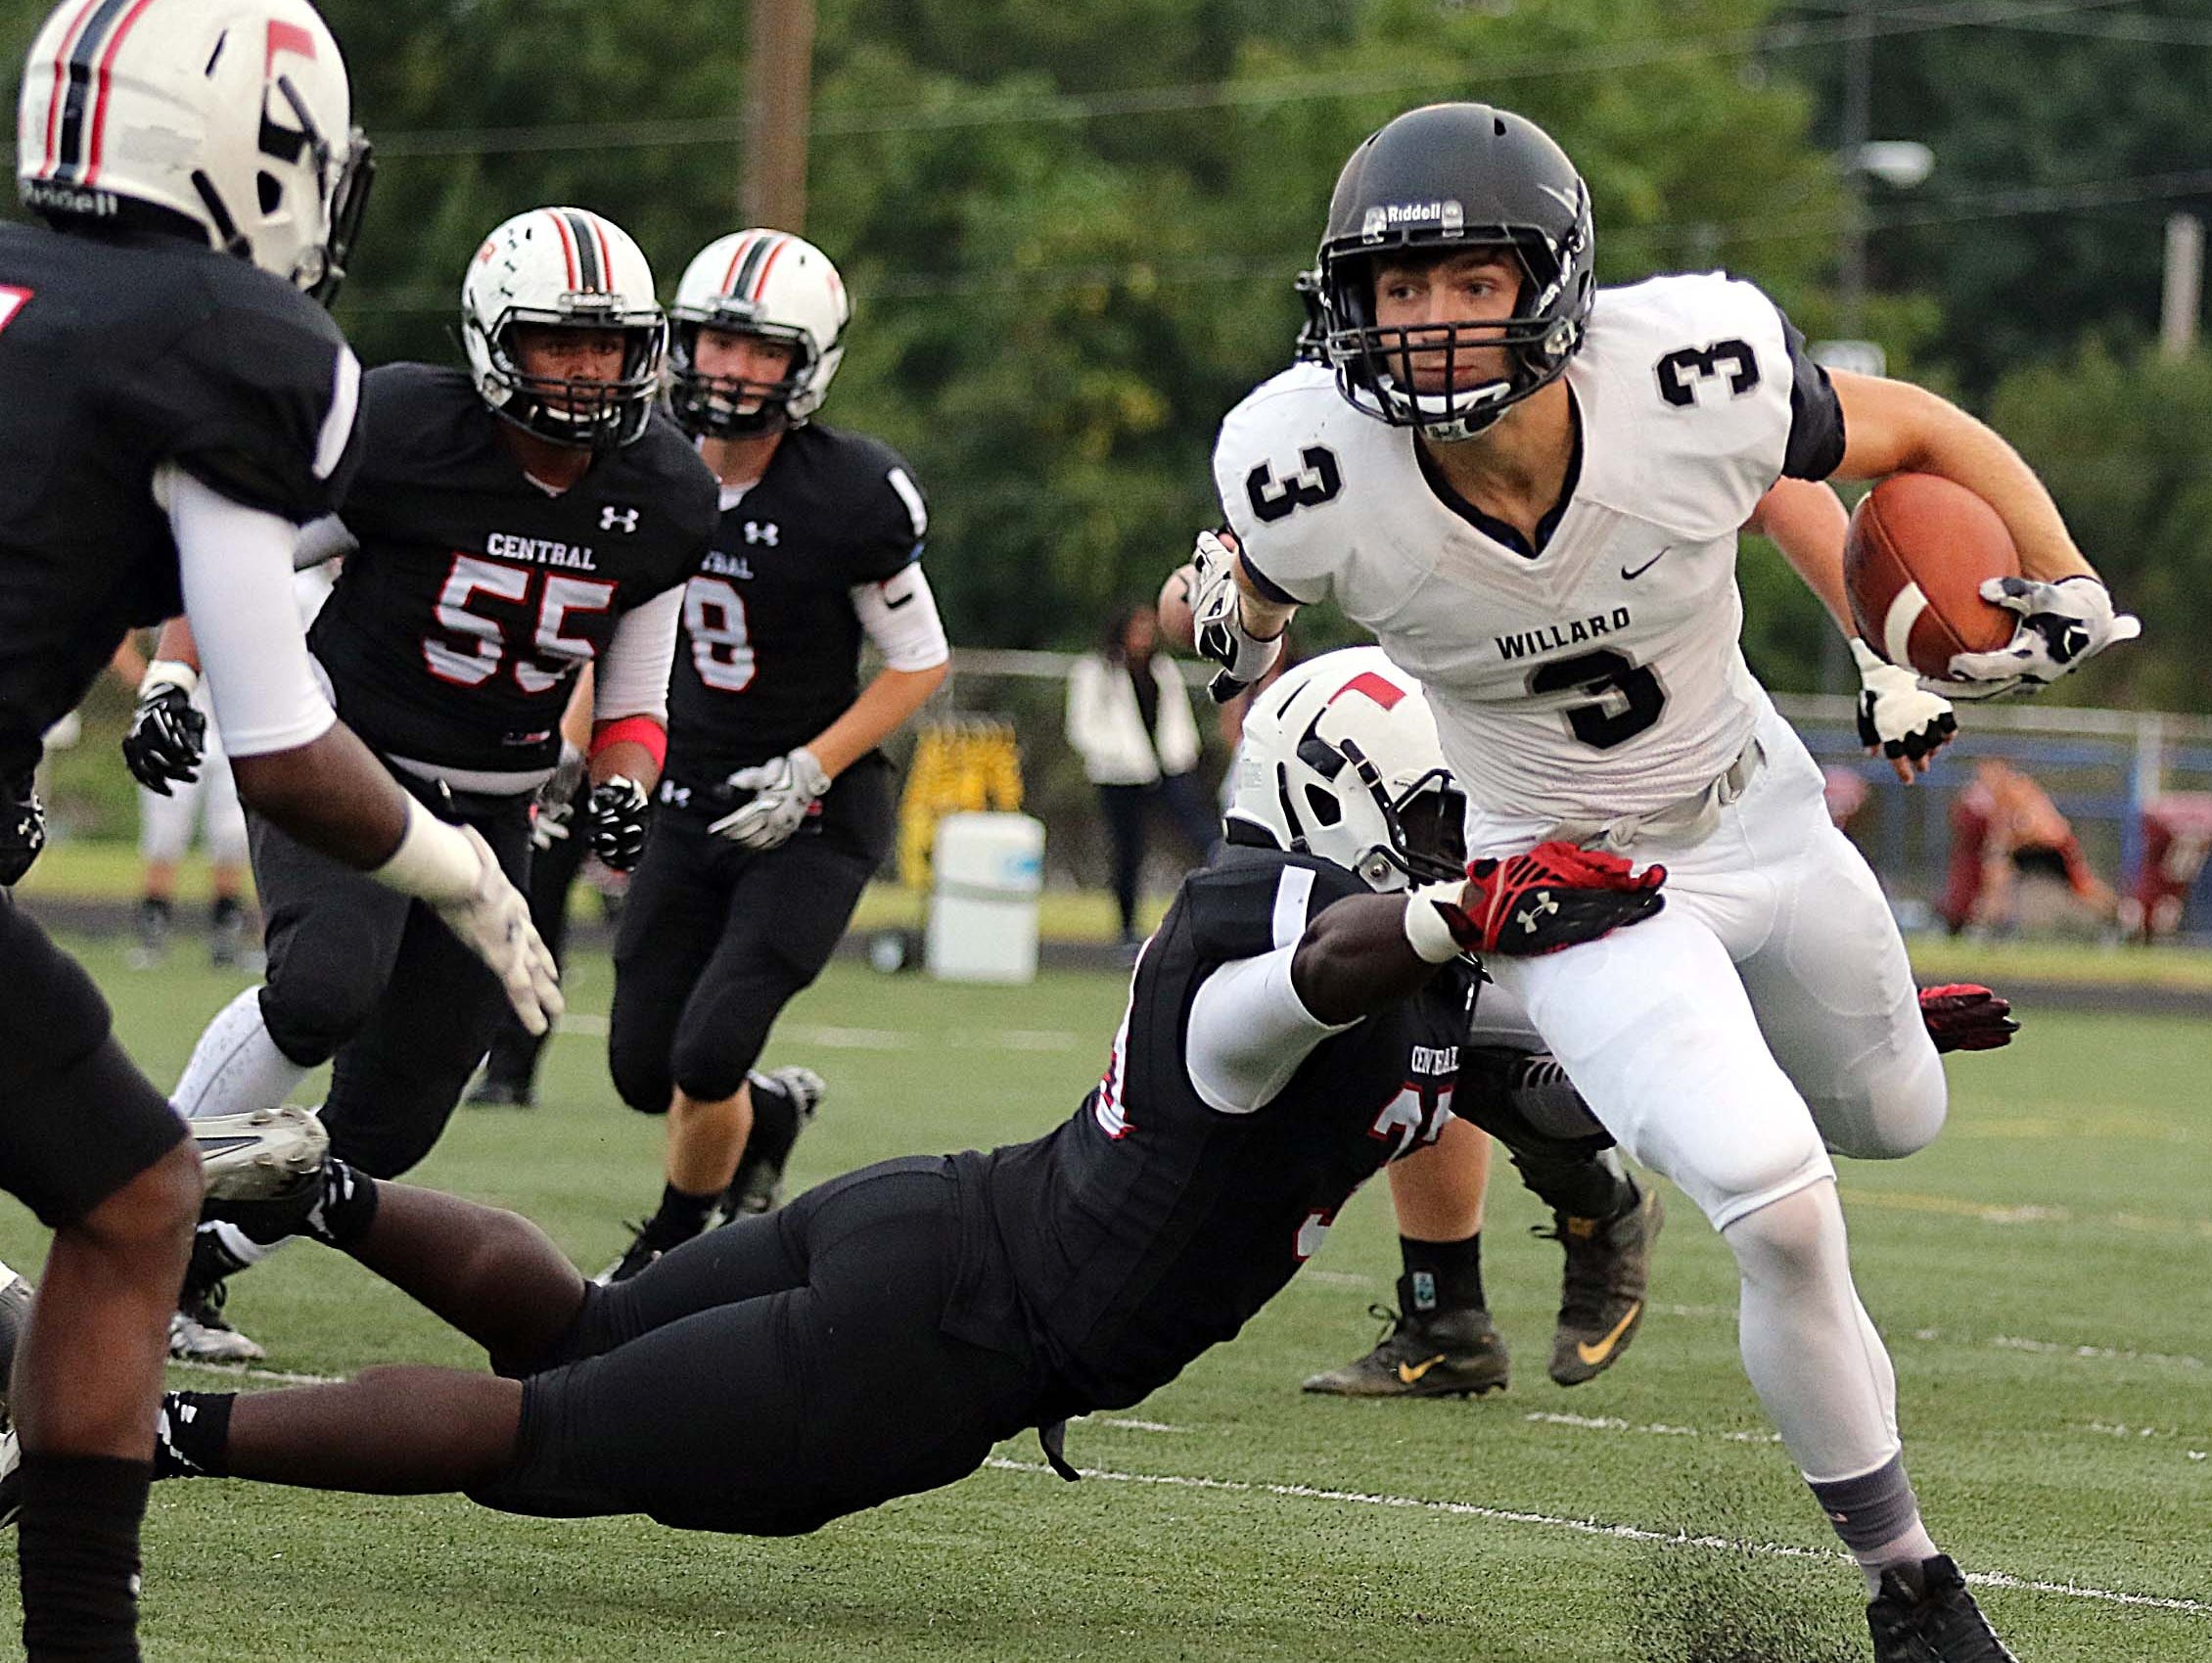 Central High School's move to the Ozark Conference in 2018 will eliminate non-conference football games against teams such as Willard.